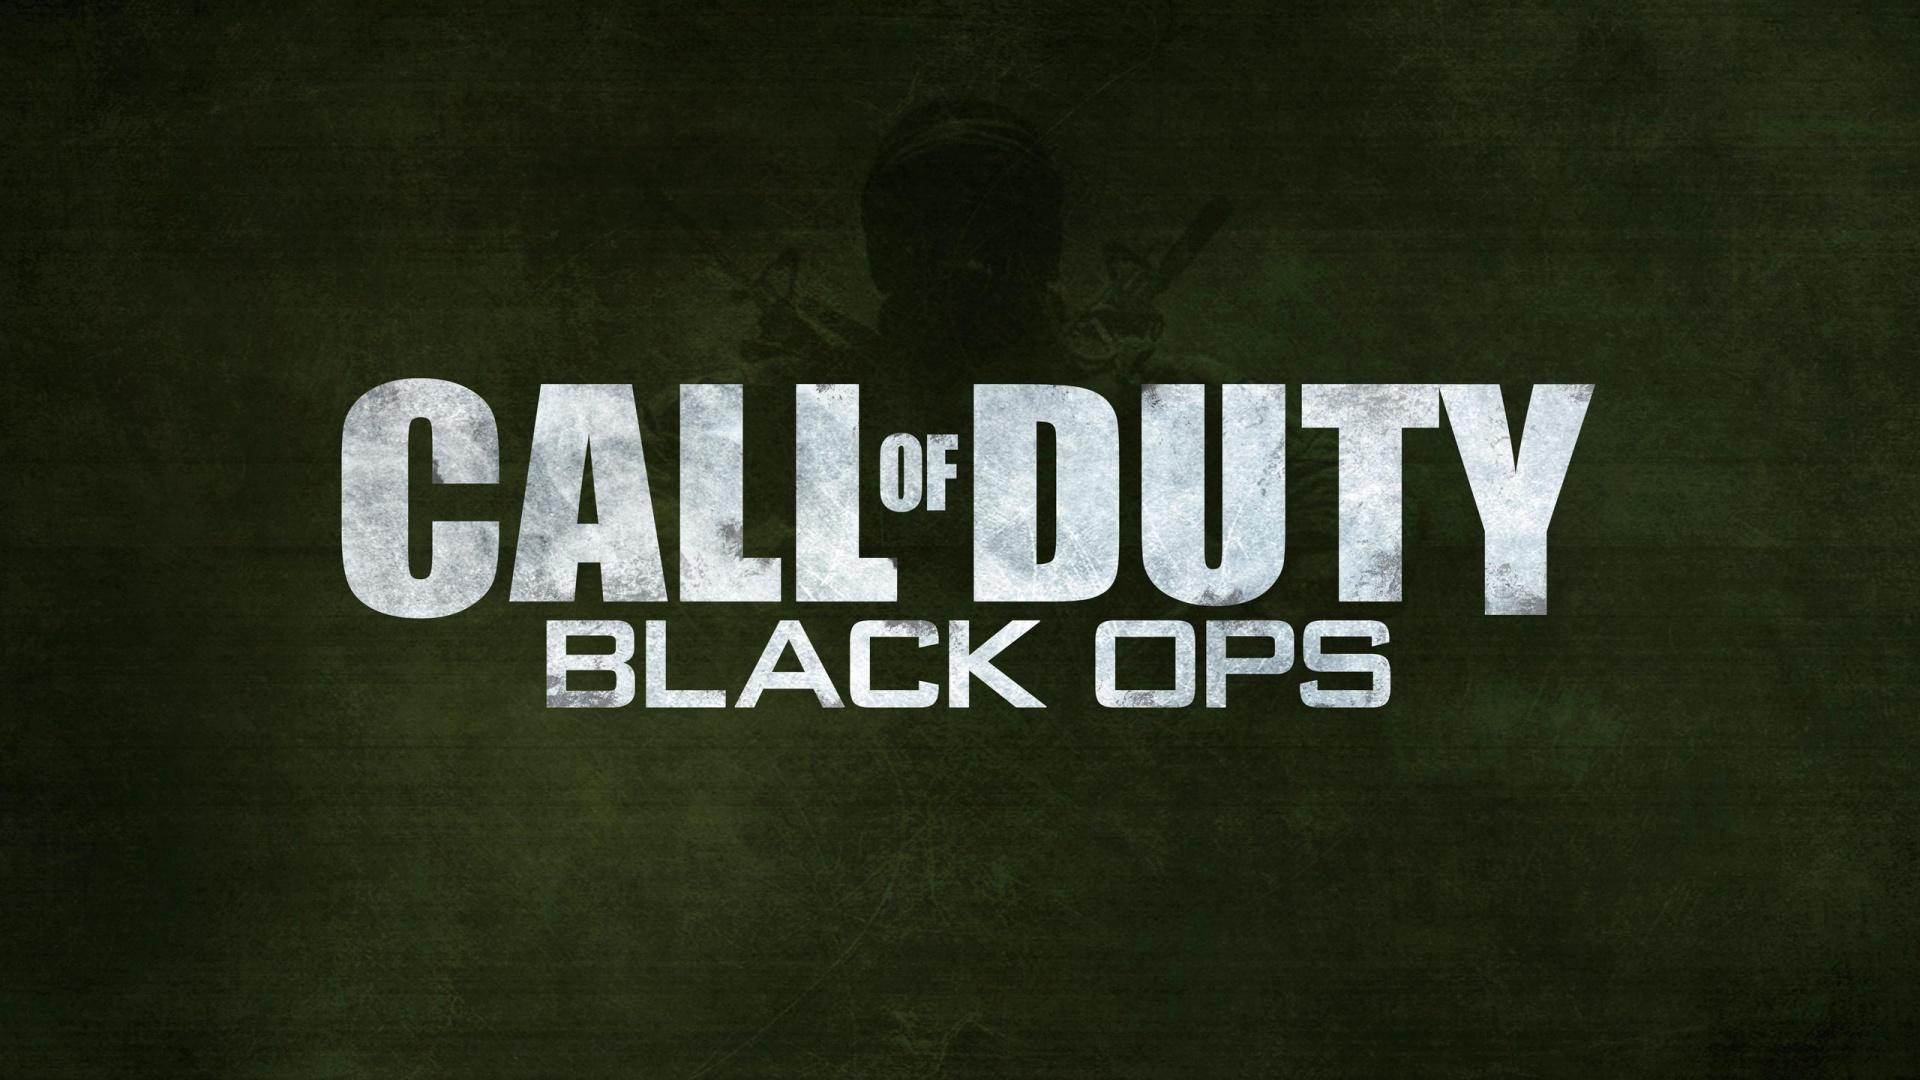 Call of Duty: Black Ops 1920x1080